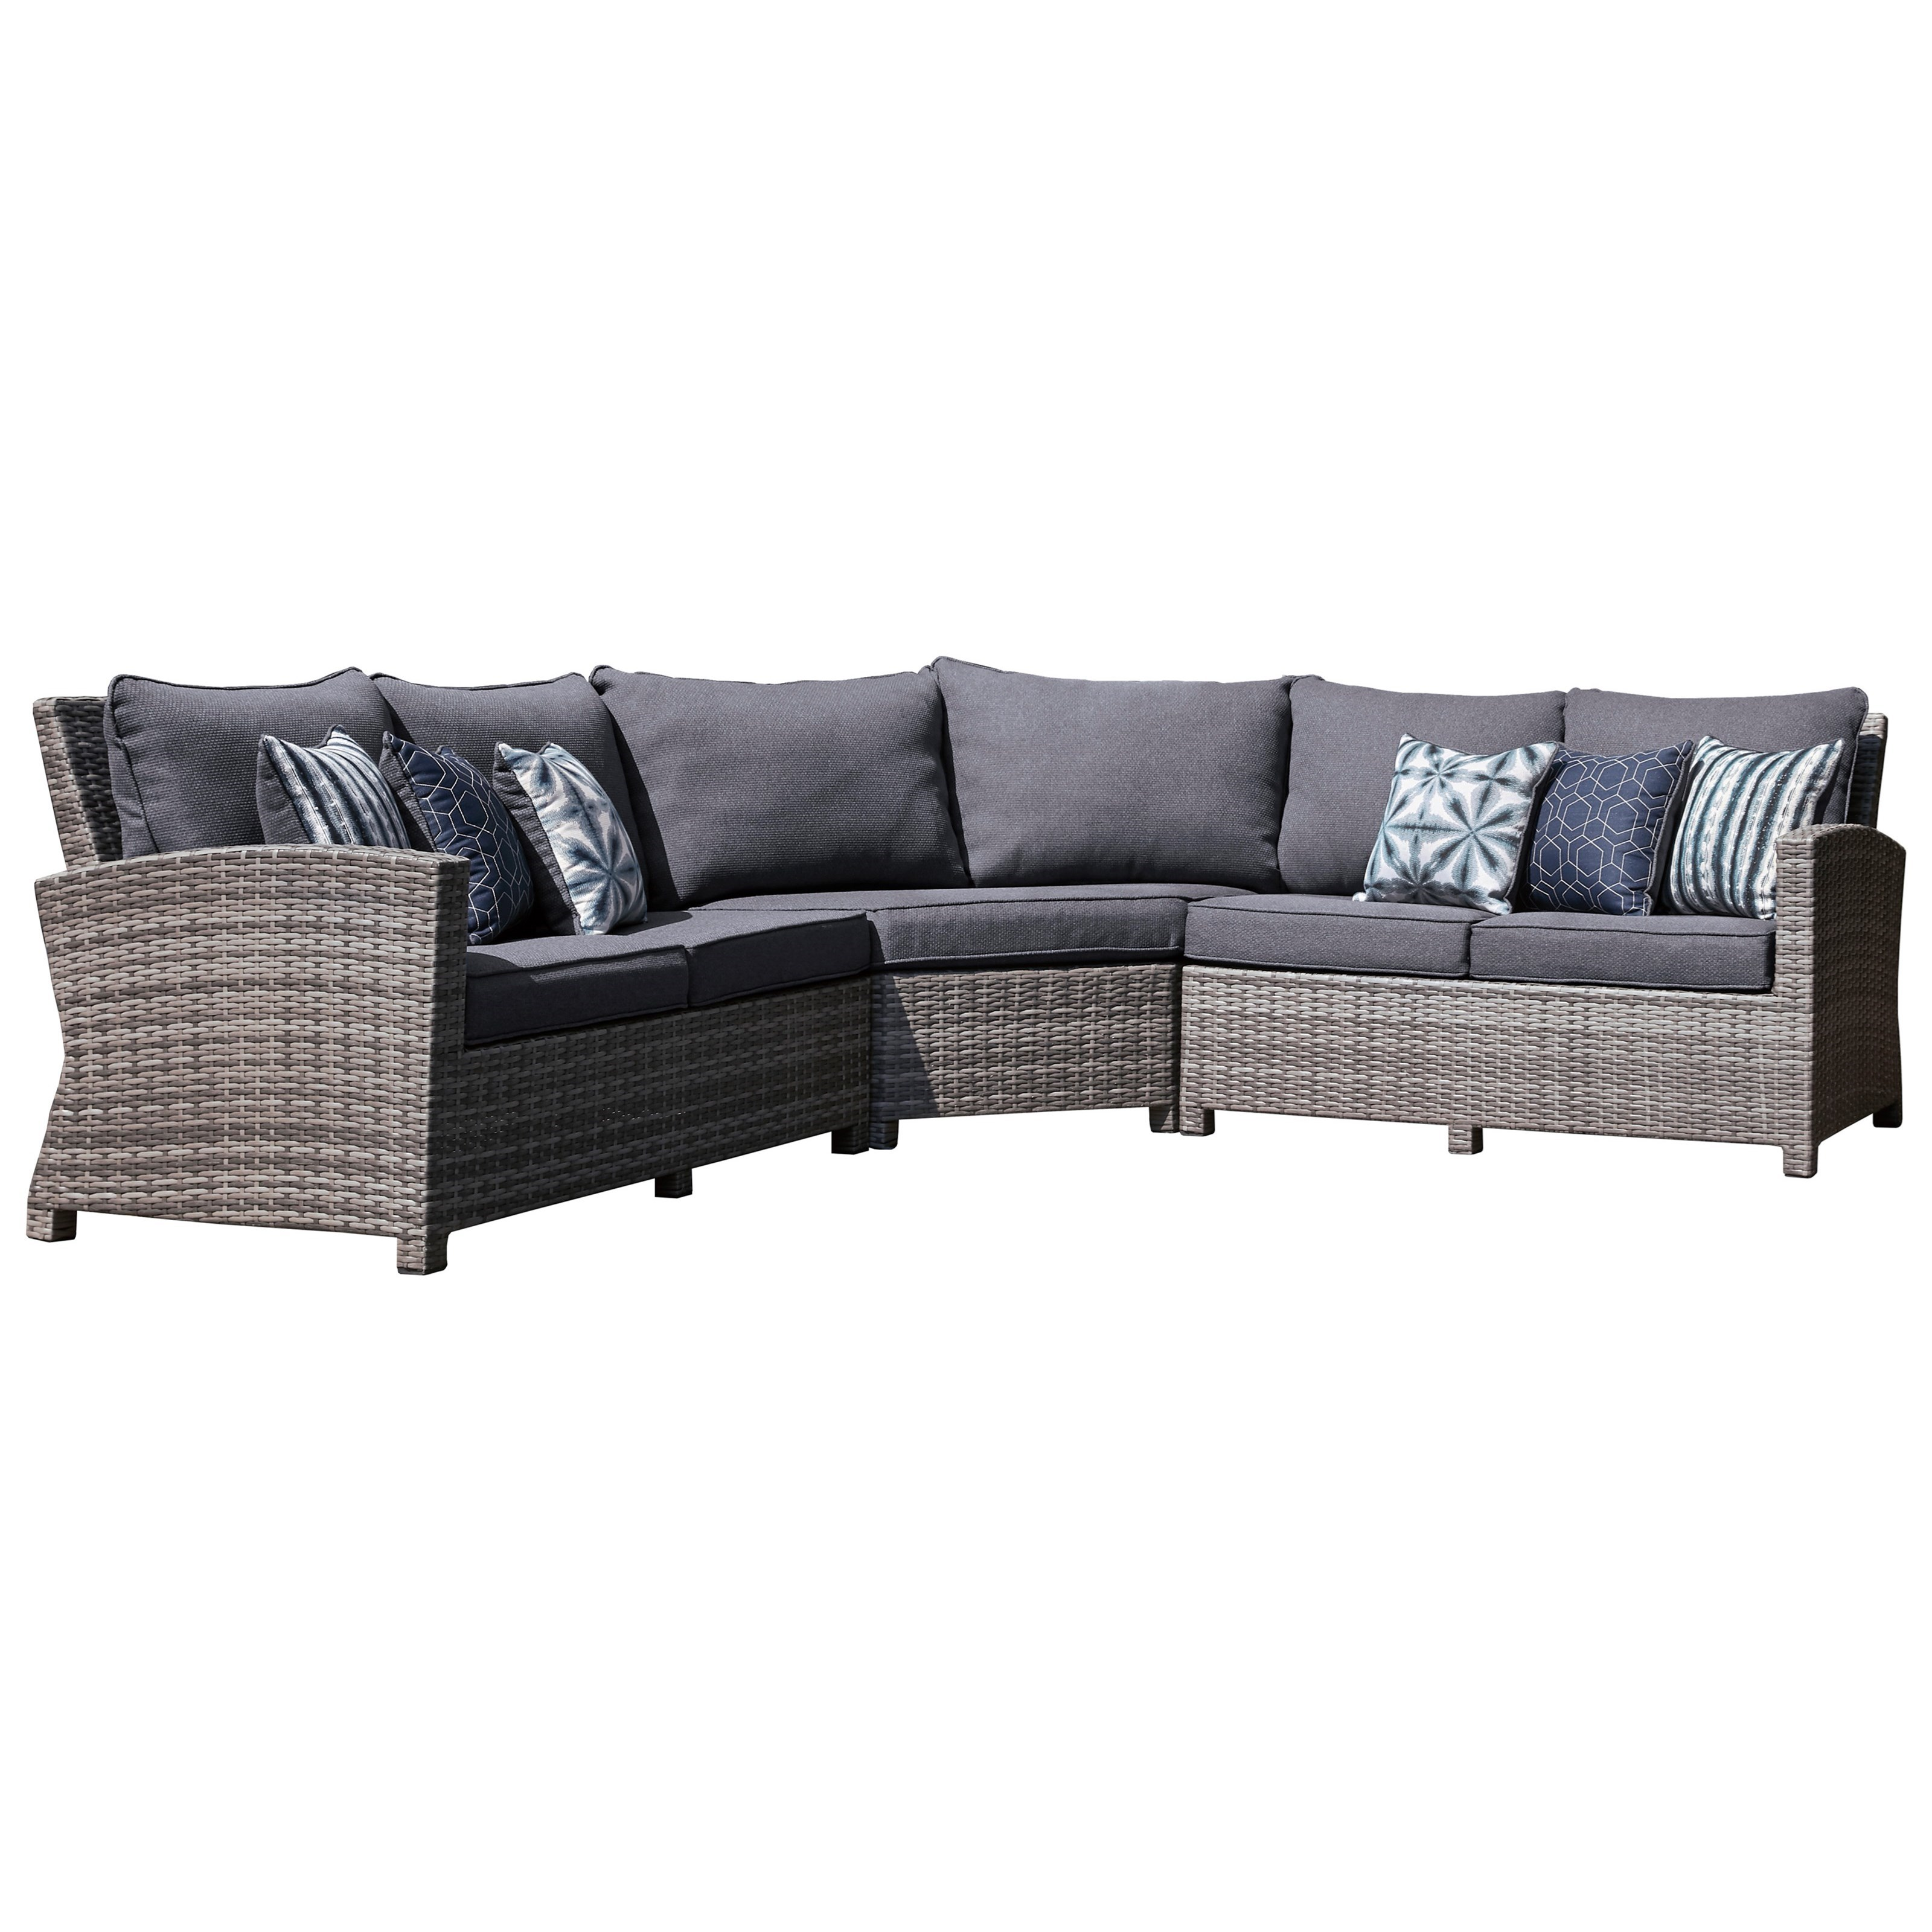 Salem Beach Outdoor Sectional by Signature Design by Ashley at Northeast Factory Direct